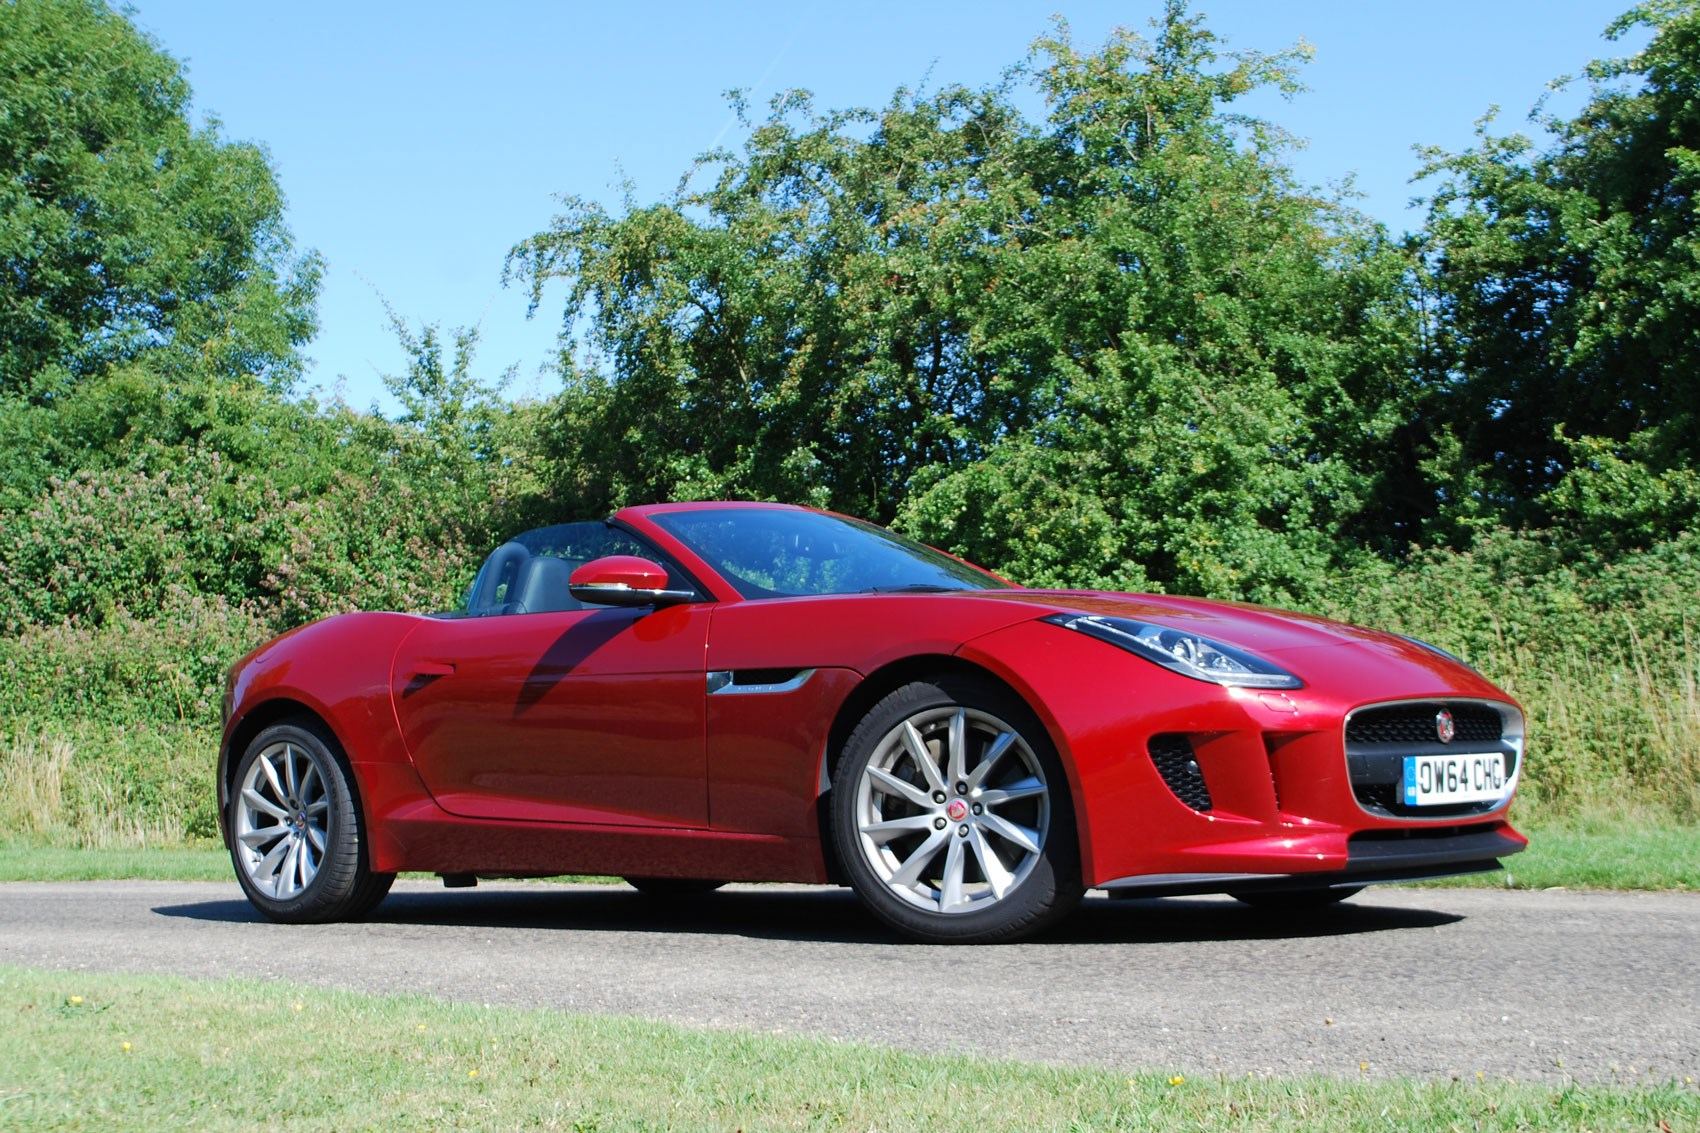 htm for convertible mo in creve new jaguar type bl sale coeur f